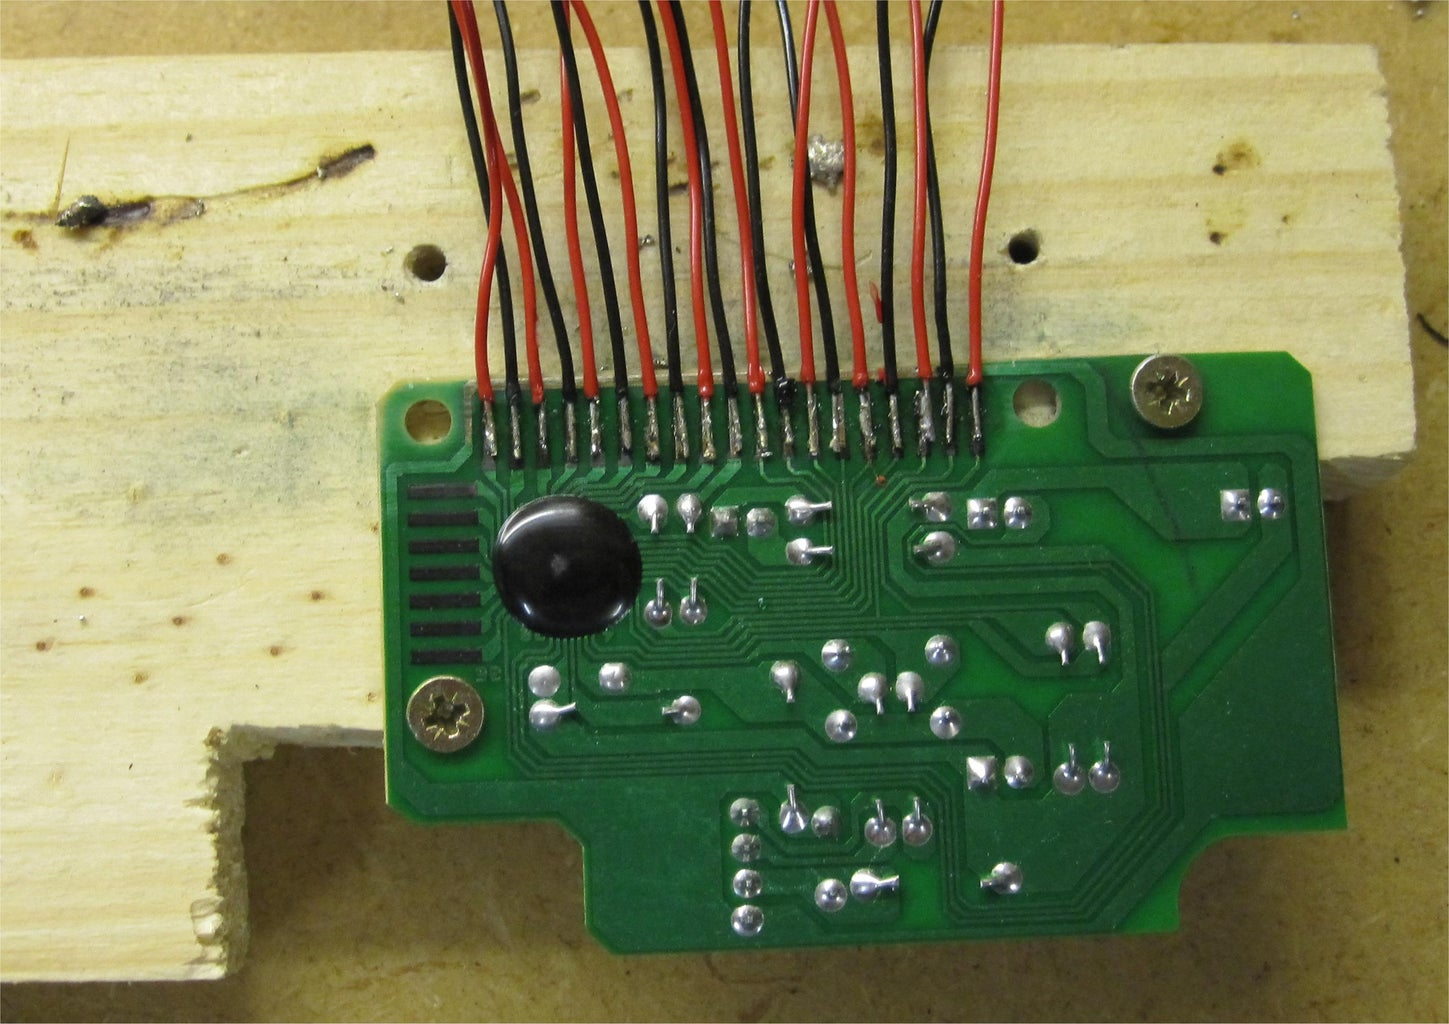 Connecting Wires to Circuit Board